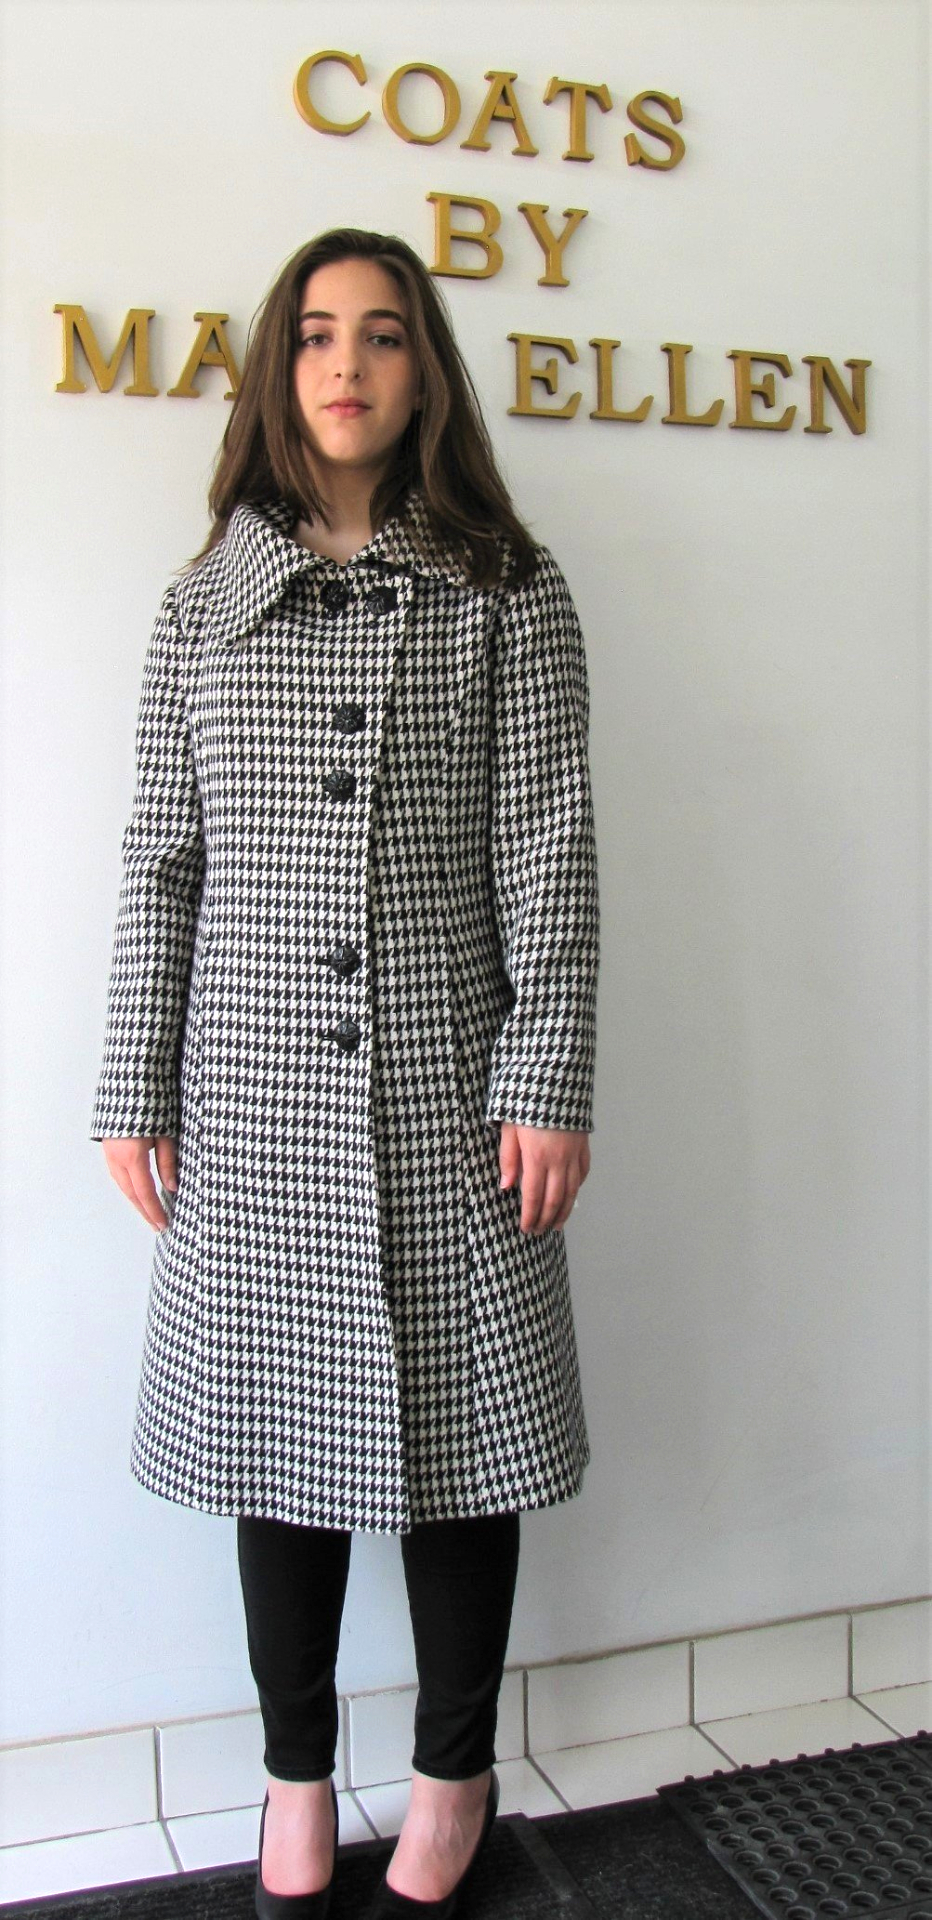 Style #B6292 Houndstooth Pattern 100% Pure Virgin Wool   Features:  Exquisite modern styling. This style is contour fitting to hug  your shape.   Single breasted, buttons are uniquely staggered in pairs.  Slit pockets on the seam. Fully chamois lined.   Extra buttons included.  In-stock Colours:  Black/White Houndstooth.   or can be custom made in the colour of your choice.  Various Fabric: 100% Pure Virgin Wool or can be custom made  in the fabric of your choice.  Sizes:  S,M,L  $ 449 and up.